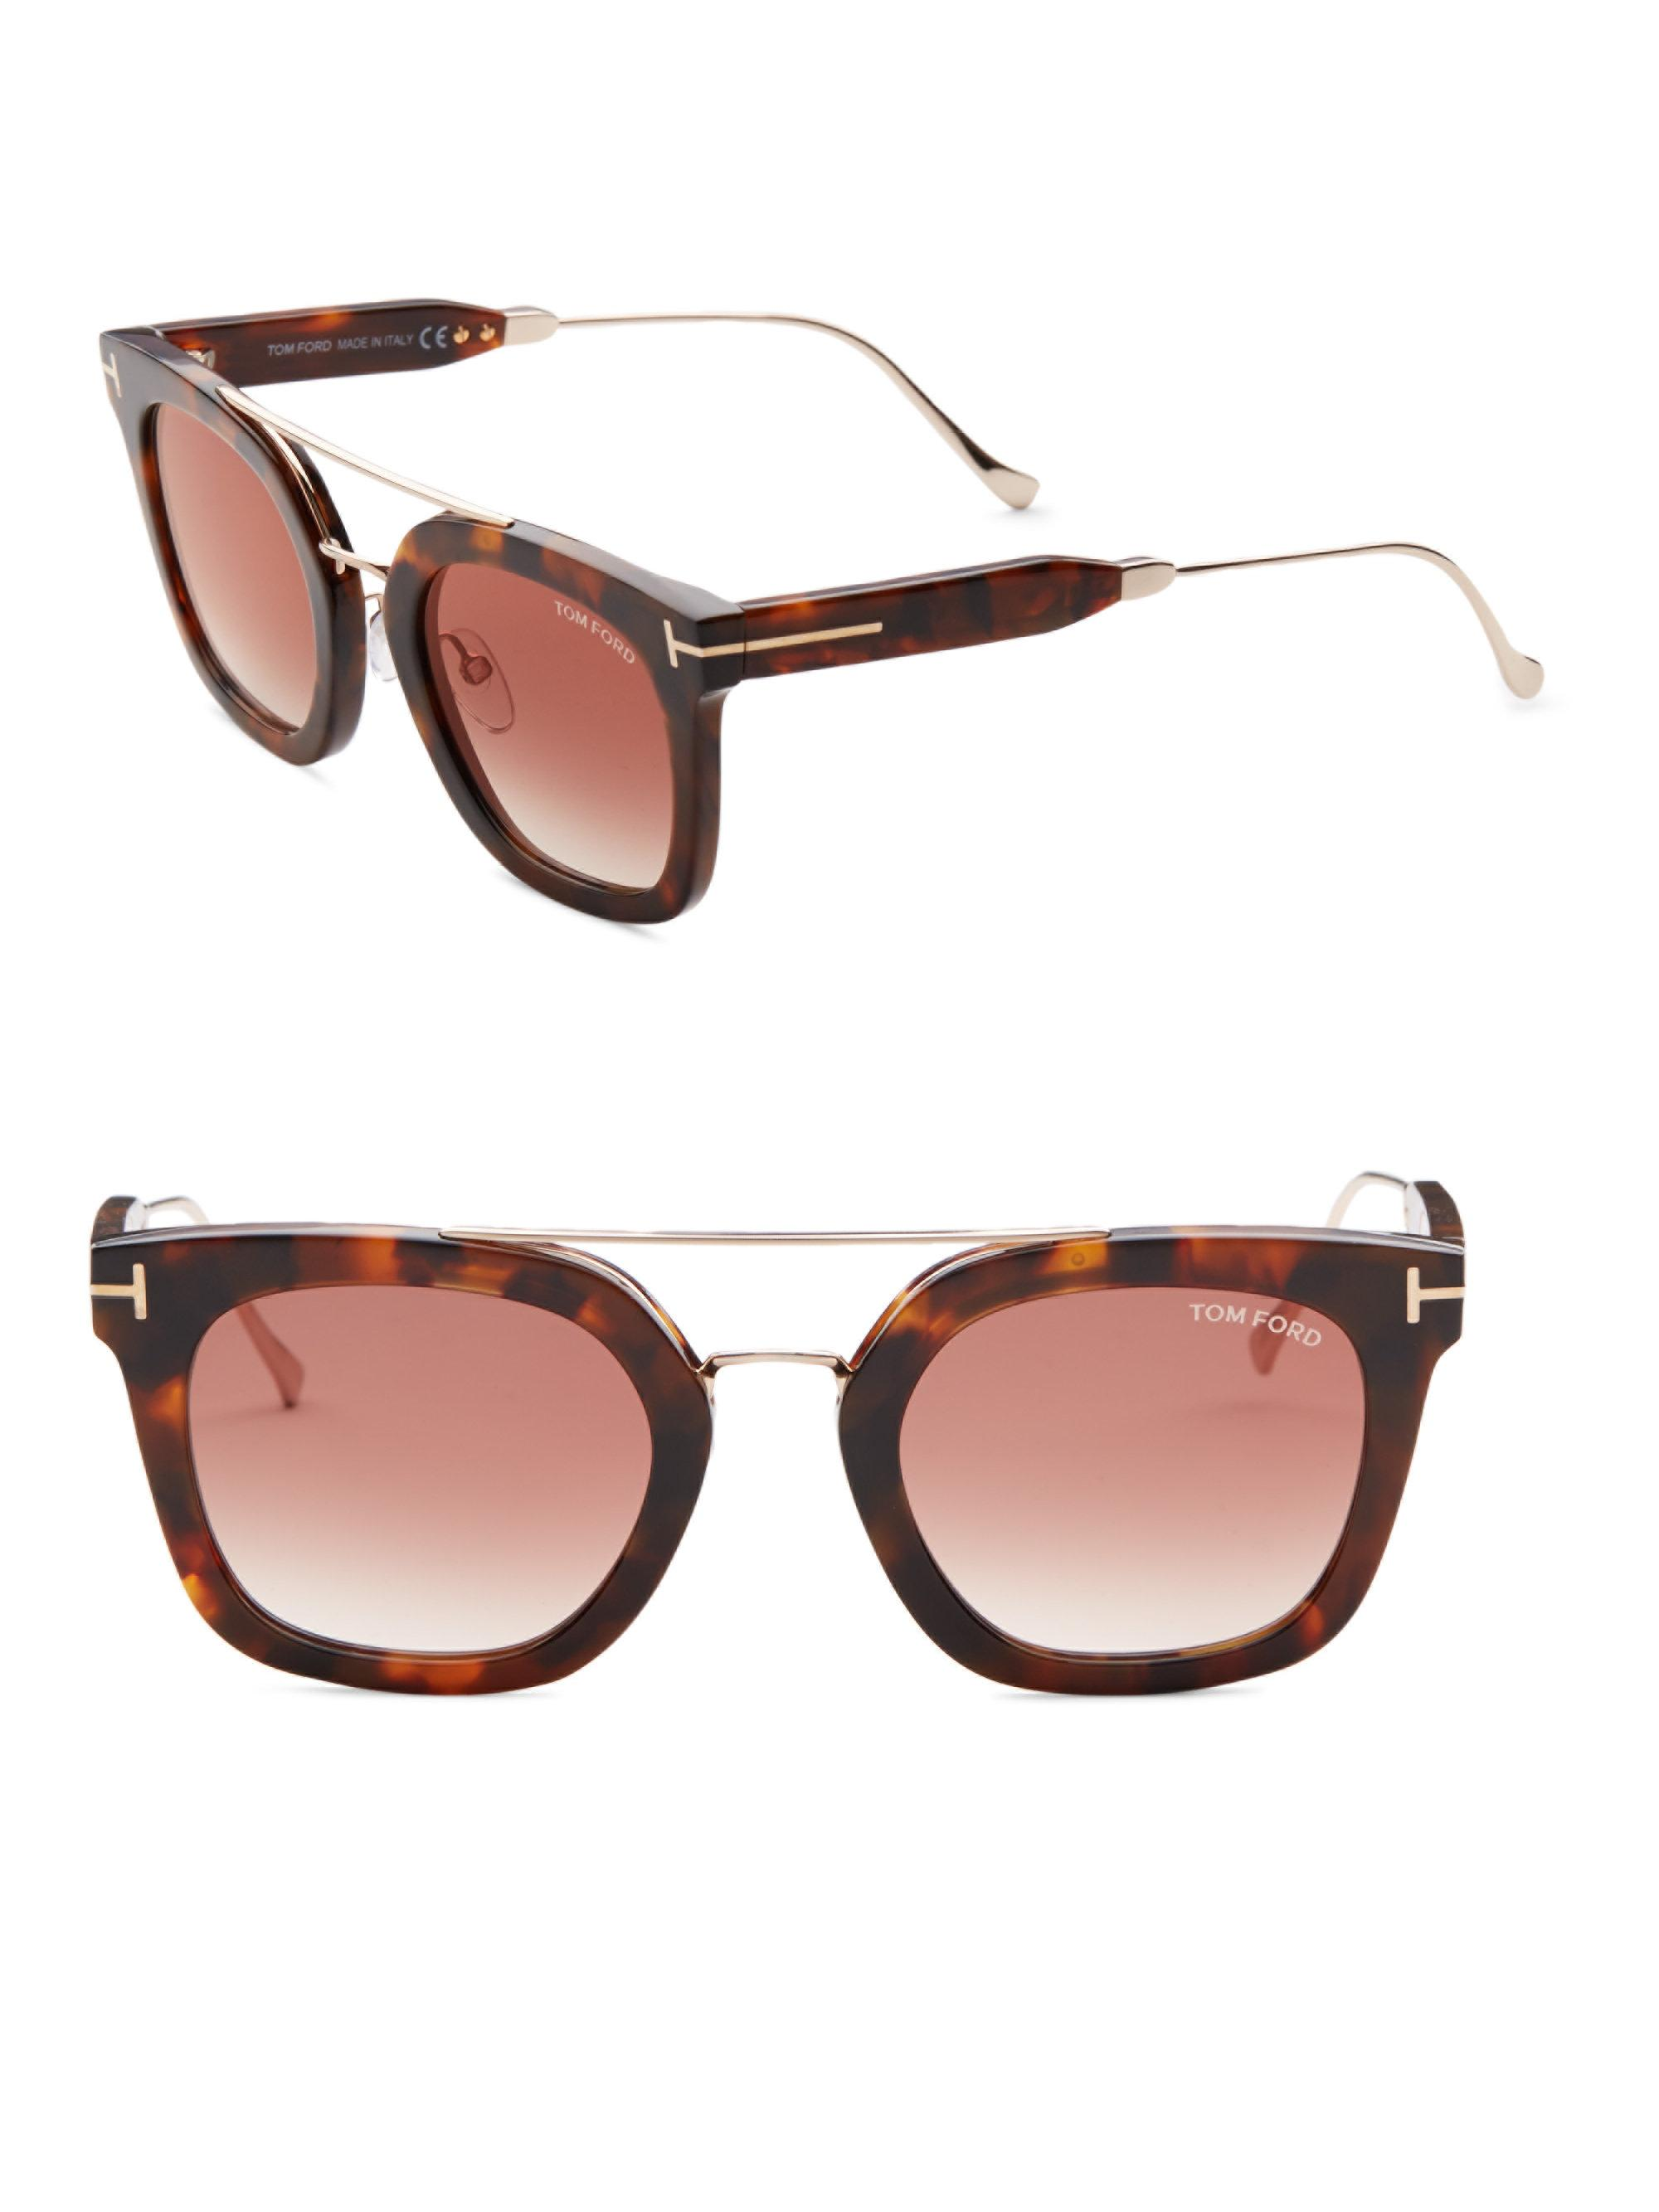 Tom Ford FT0541 05N 51 mm/25 mm SBeuw